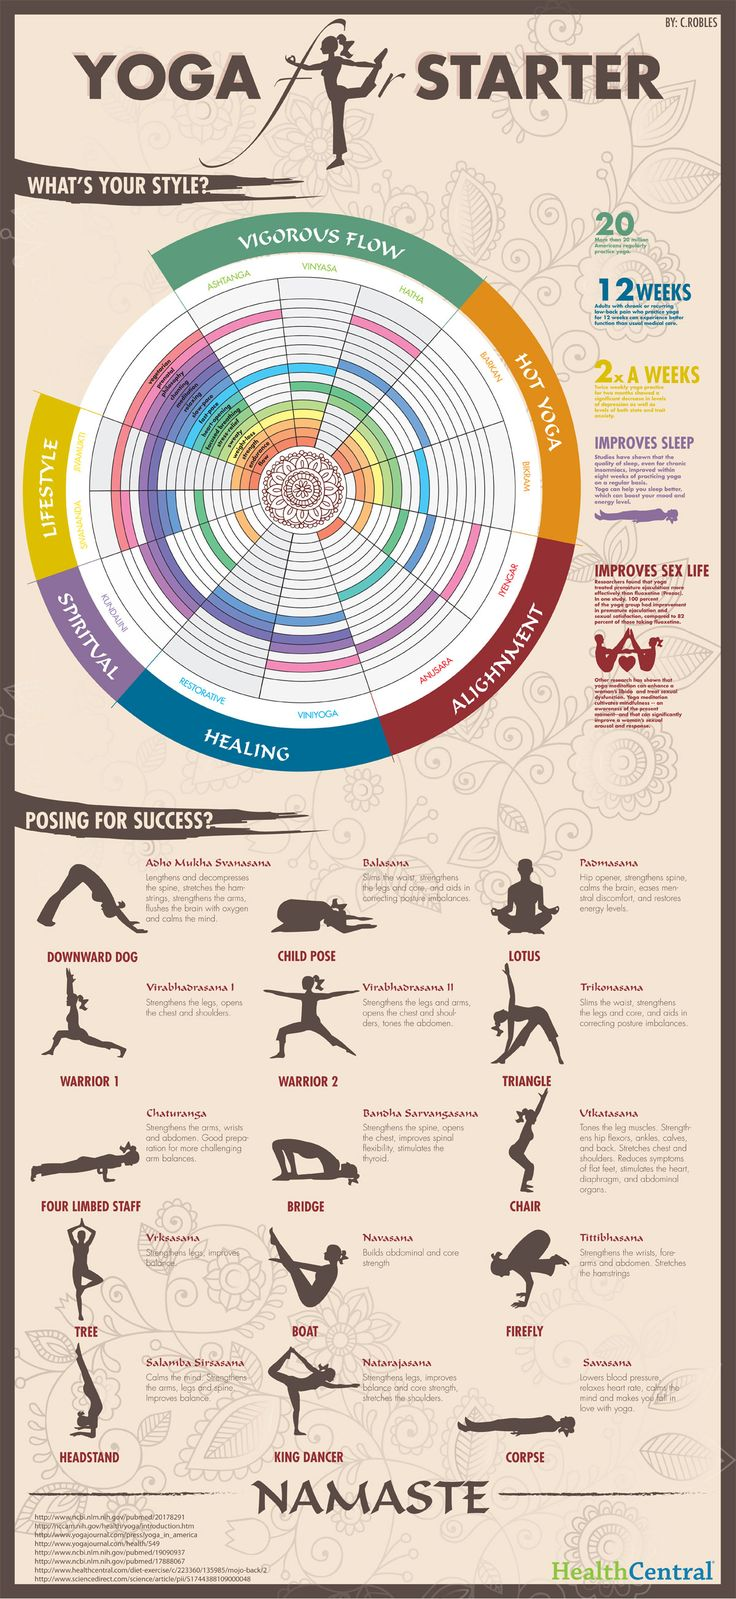 Health benefit of moringa leaves and moringa seeds nutriclue -  Yoga For Starters Infographic